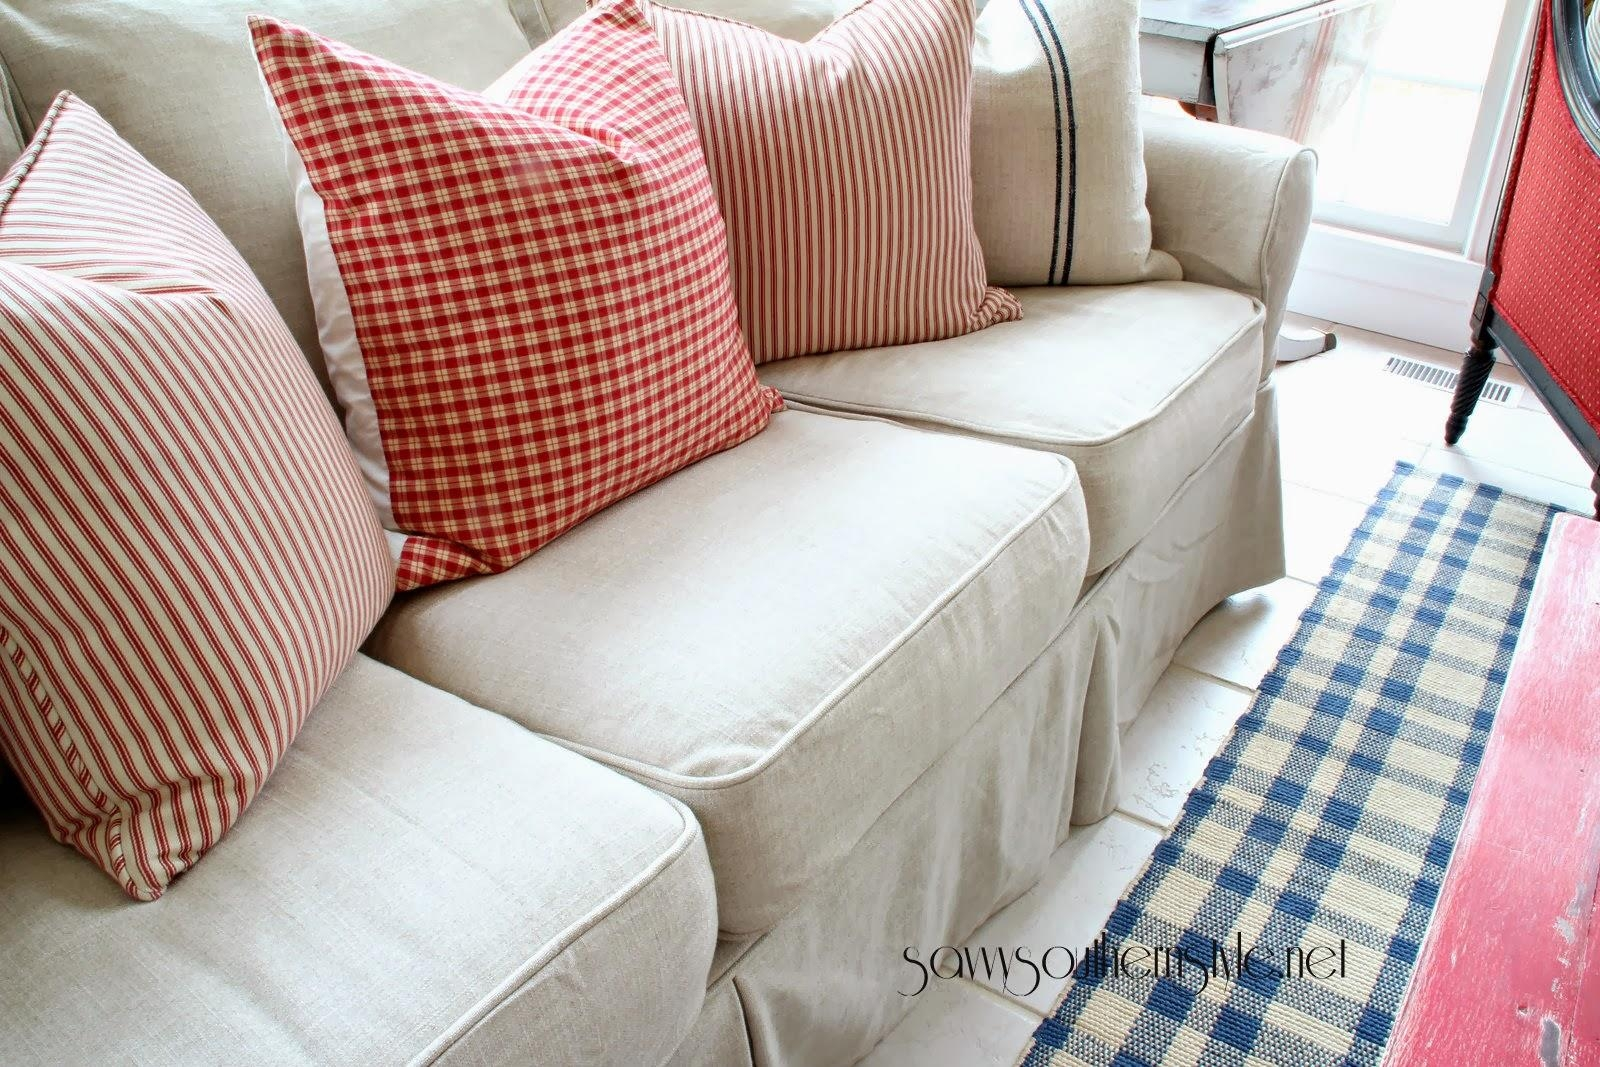 Custom Slipcovers And Couch Cover For Any Sofa Online throughout Slipcovers for Sleeper Sofas